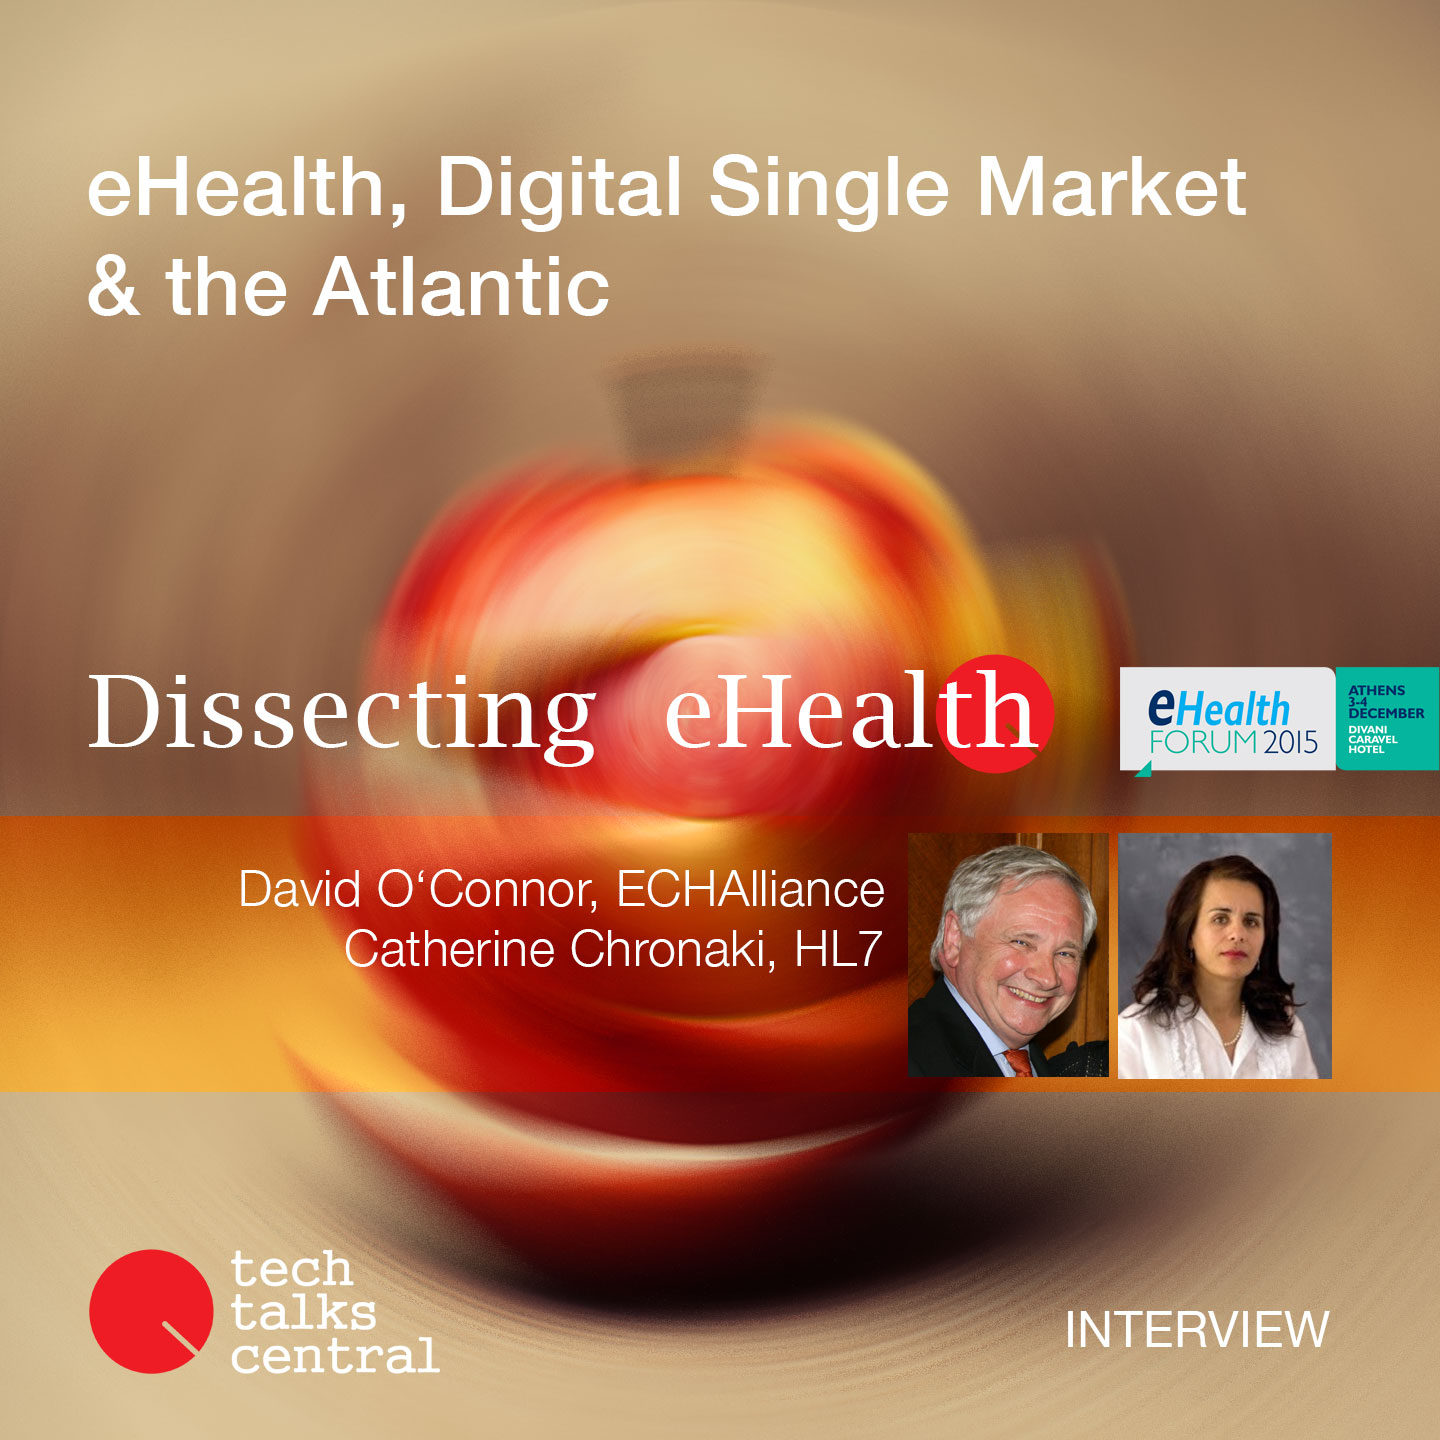 eHealth, Digital Single Market & the Atlantic